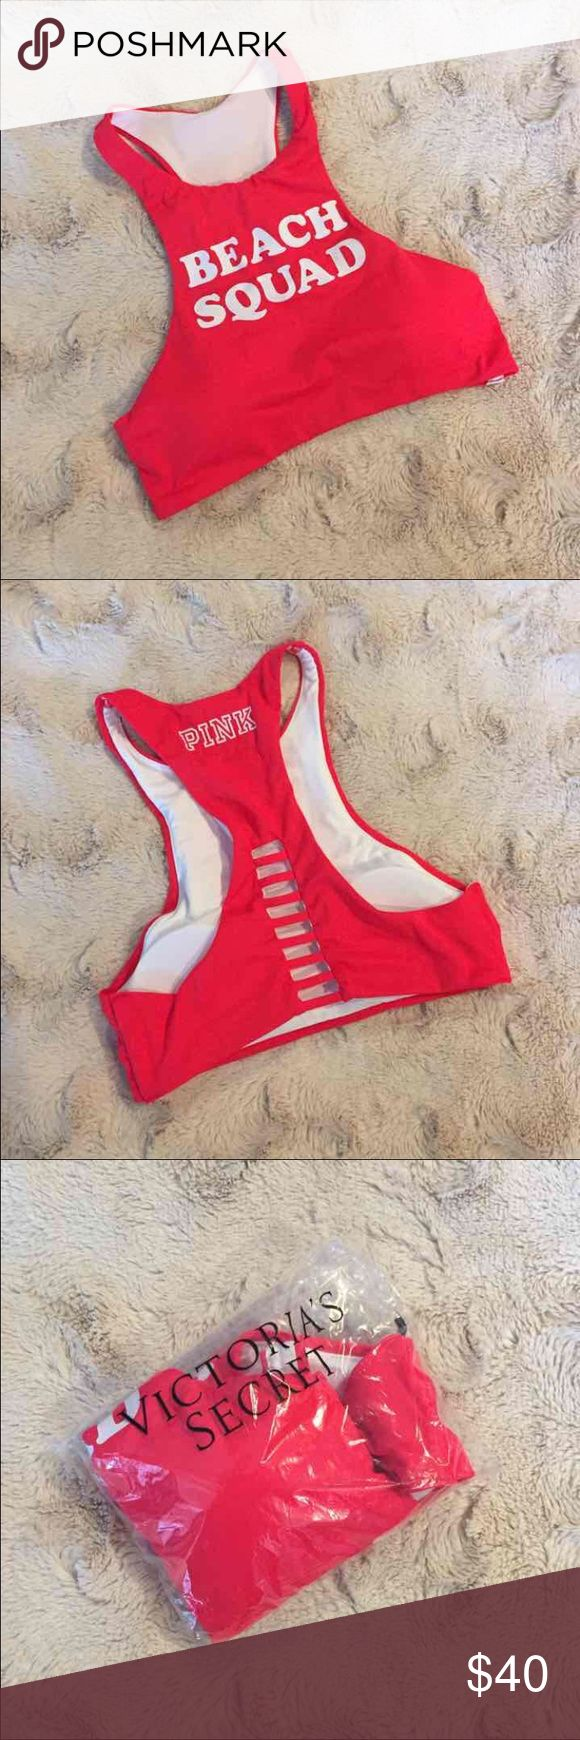 best summer style images on pinterest swimming suits beachwear